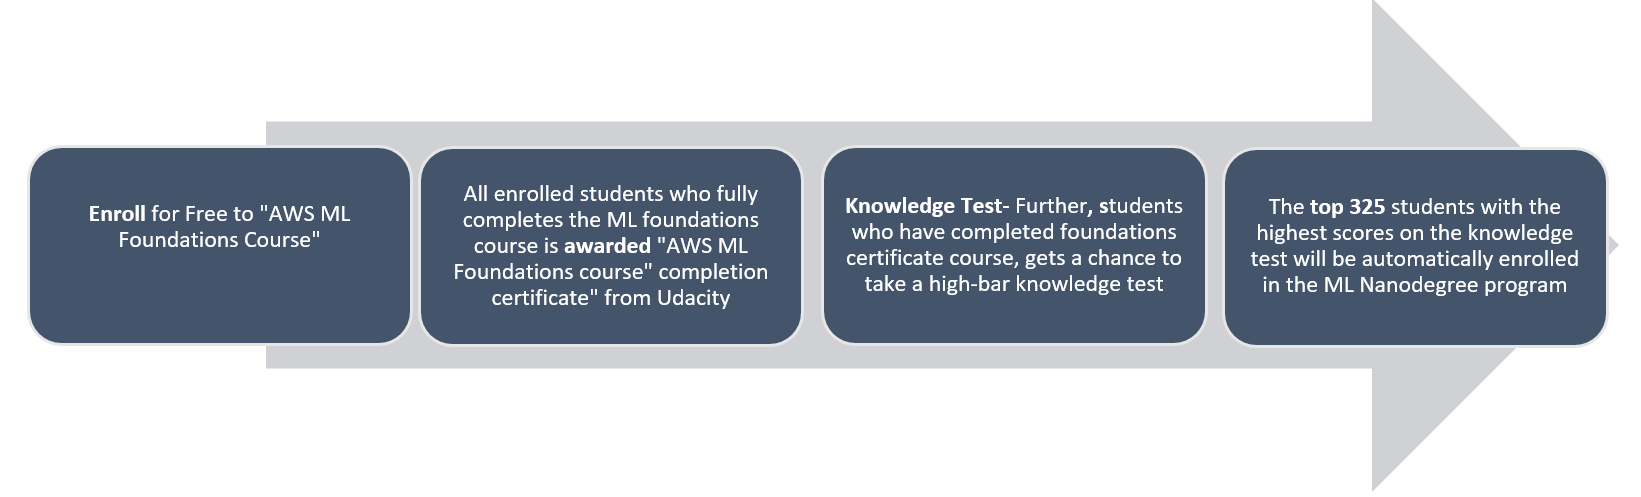 AWS Machine Learning Scholarship Program from Udacity is now open for enrollment 1